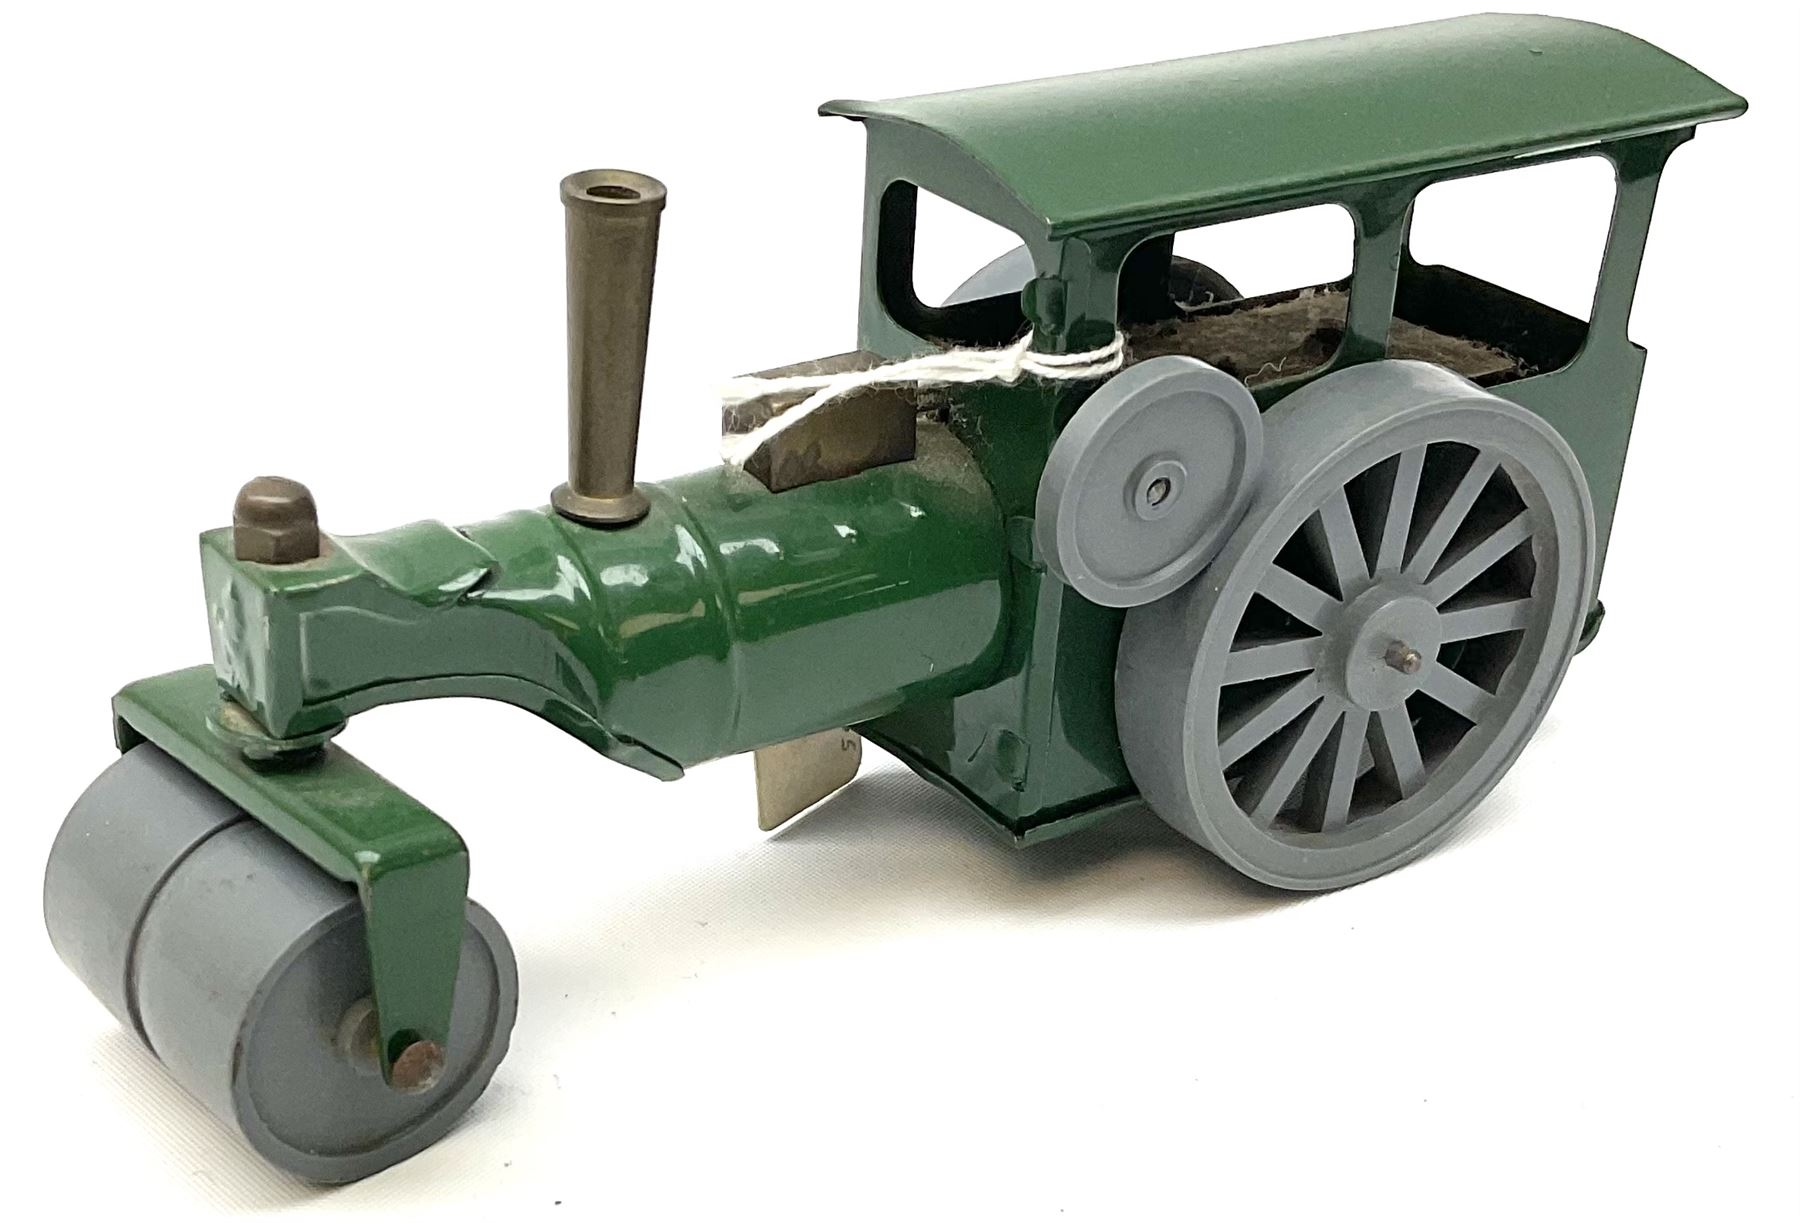 Five Tri-ang Minic tin-plate clockwork vehicles comprising Steam Roller - Image 7 of 9